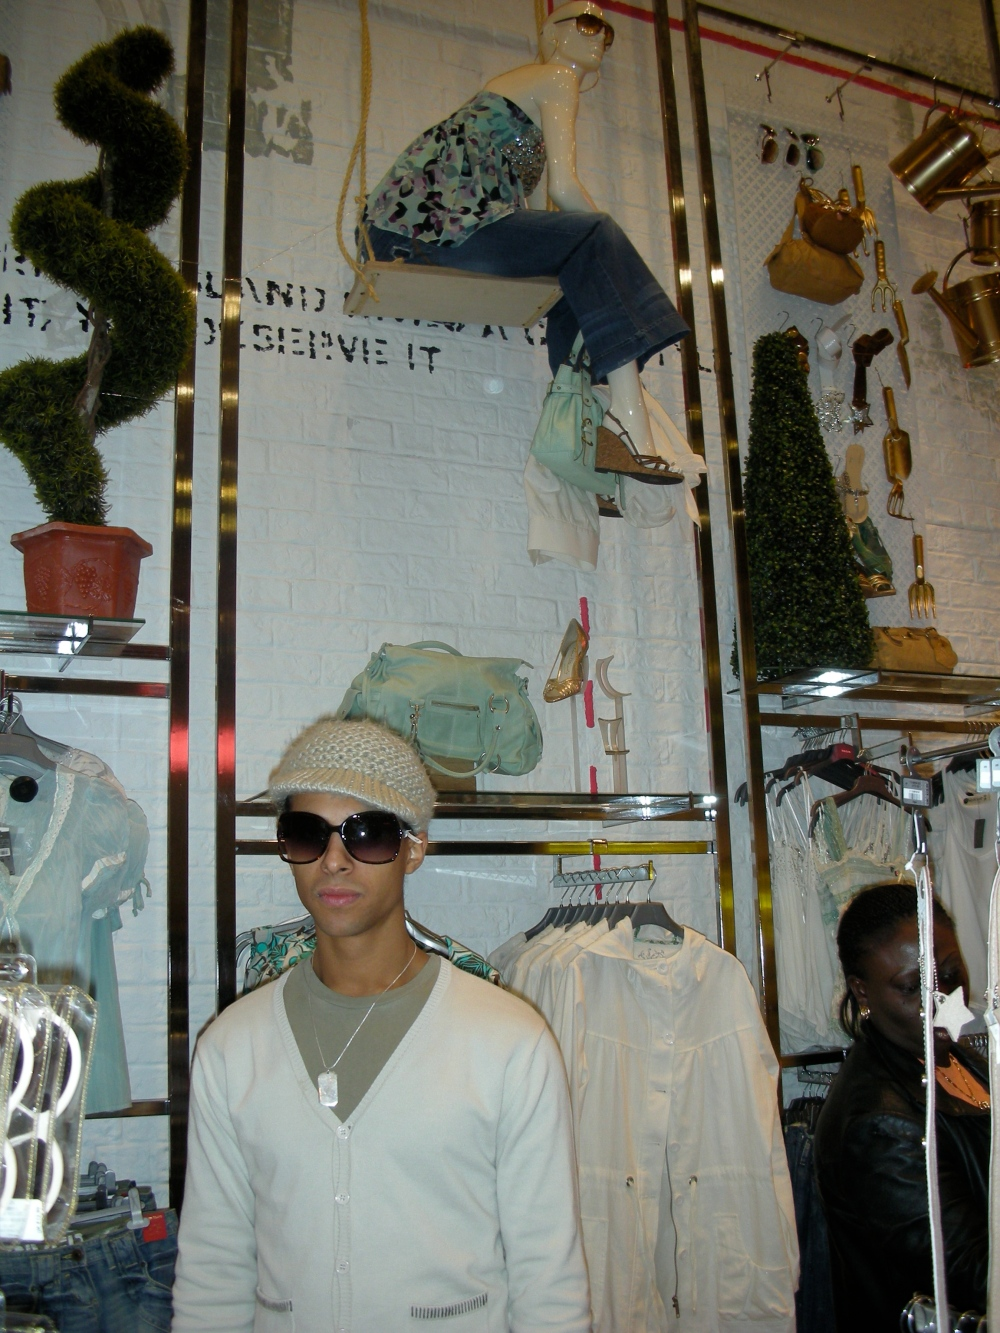 Marvin Humes from x factor boyband JLS next to Dreamwall's Rustic Brick feature wall in River Island Oxford Street